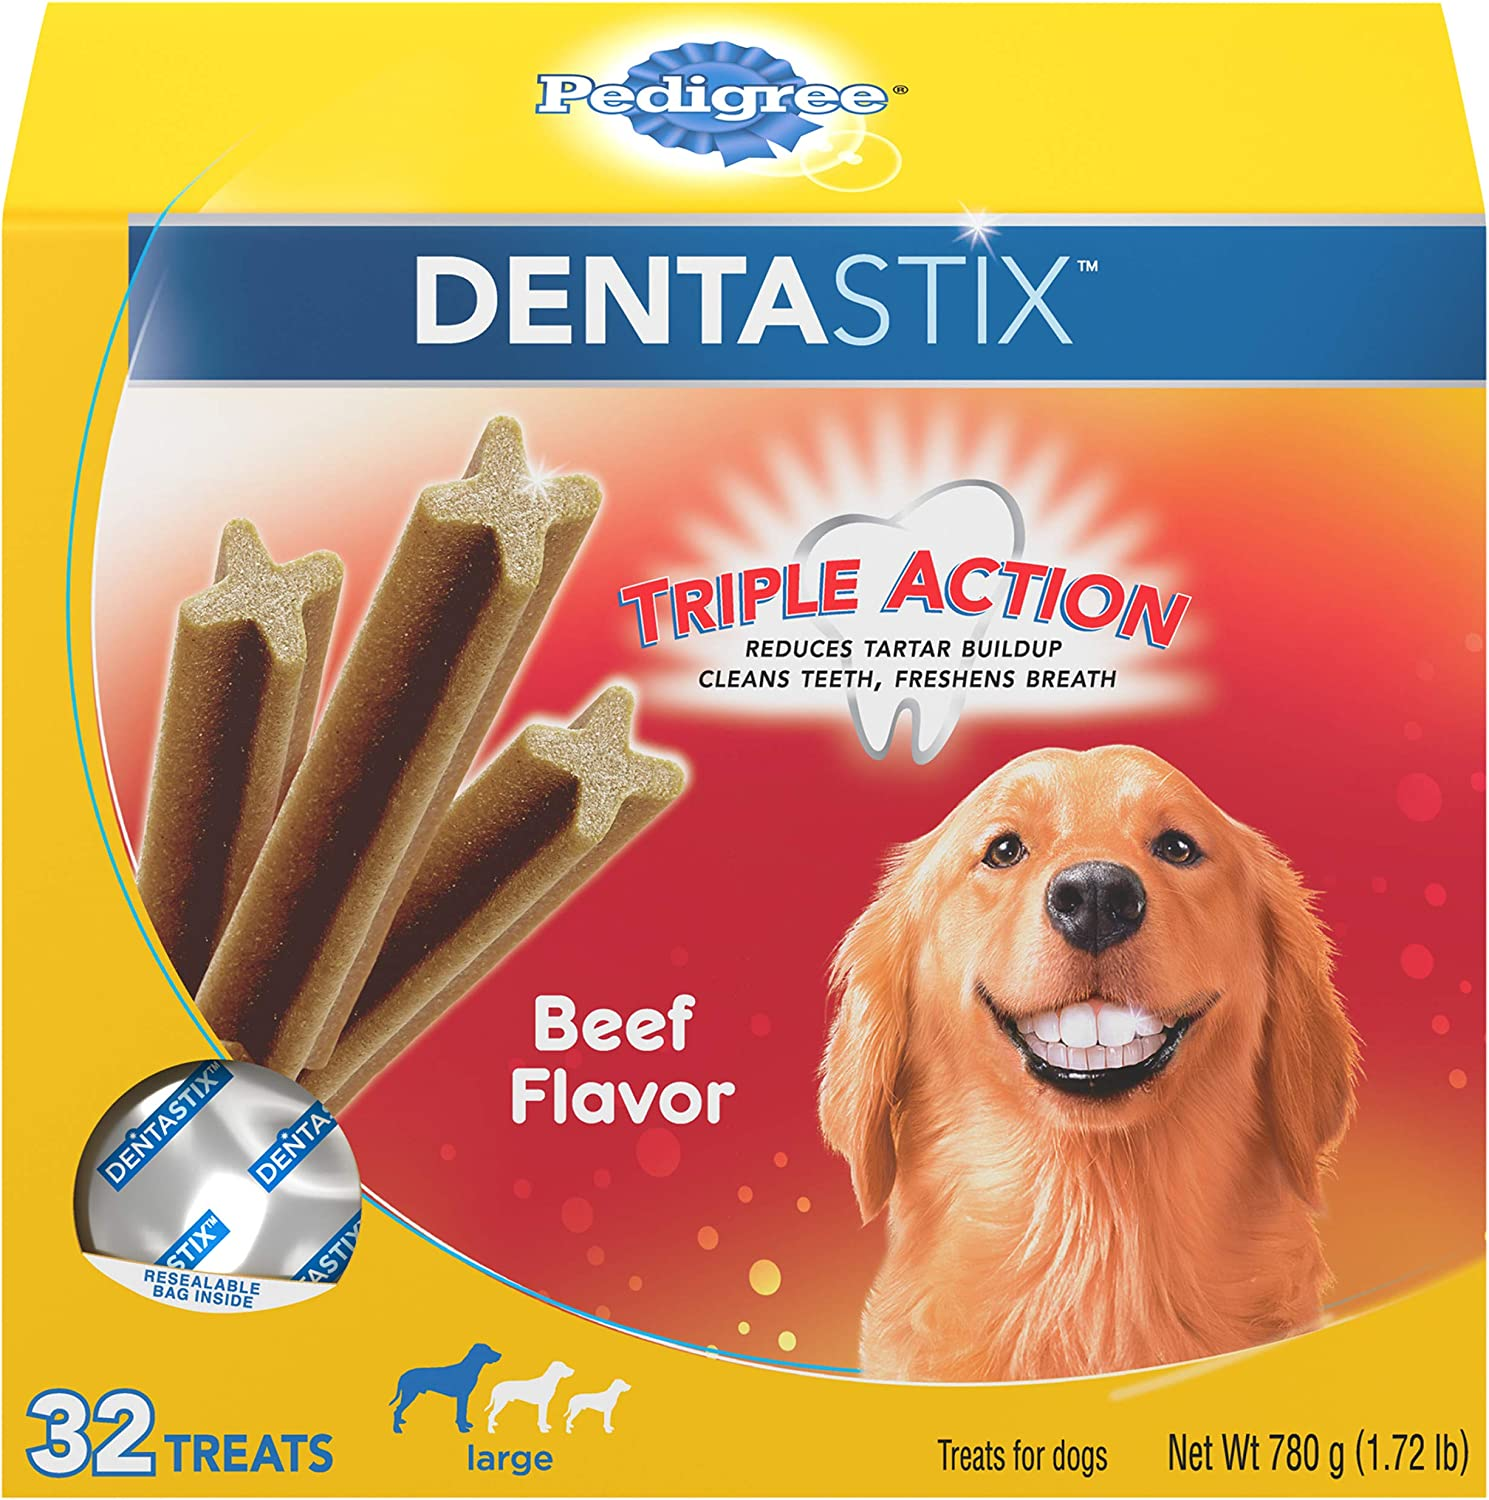 Pedigree 32-Ct DENTASTIX Treats for Large Dogs Beef $11.97 Coupon